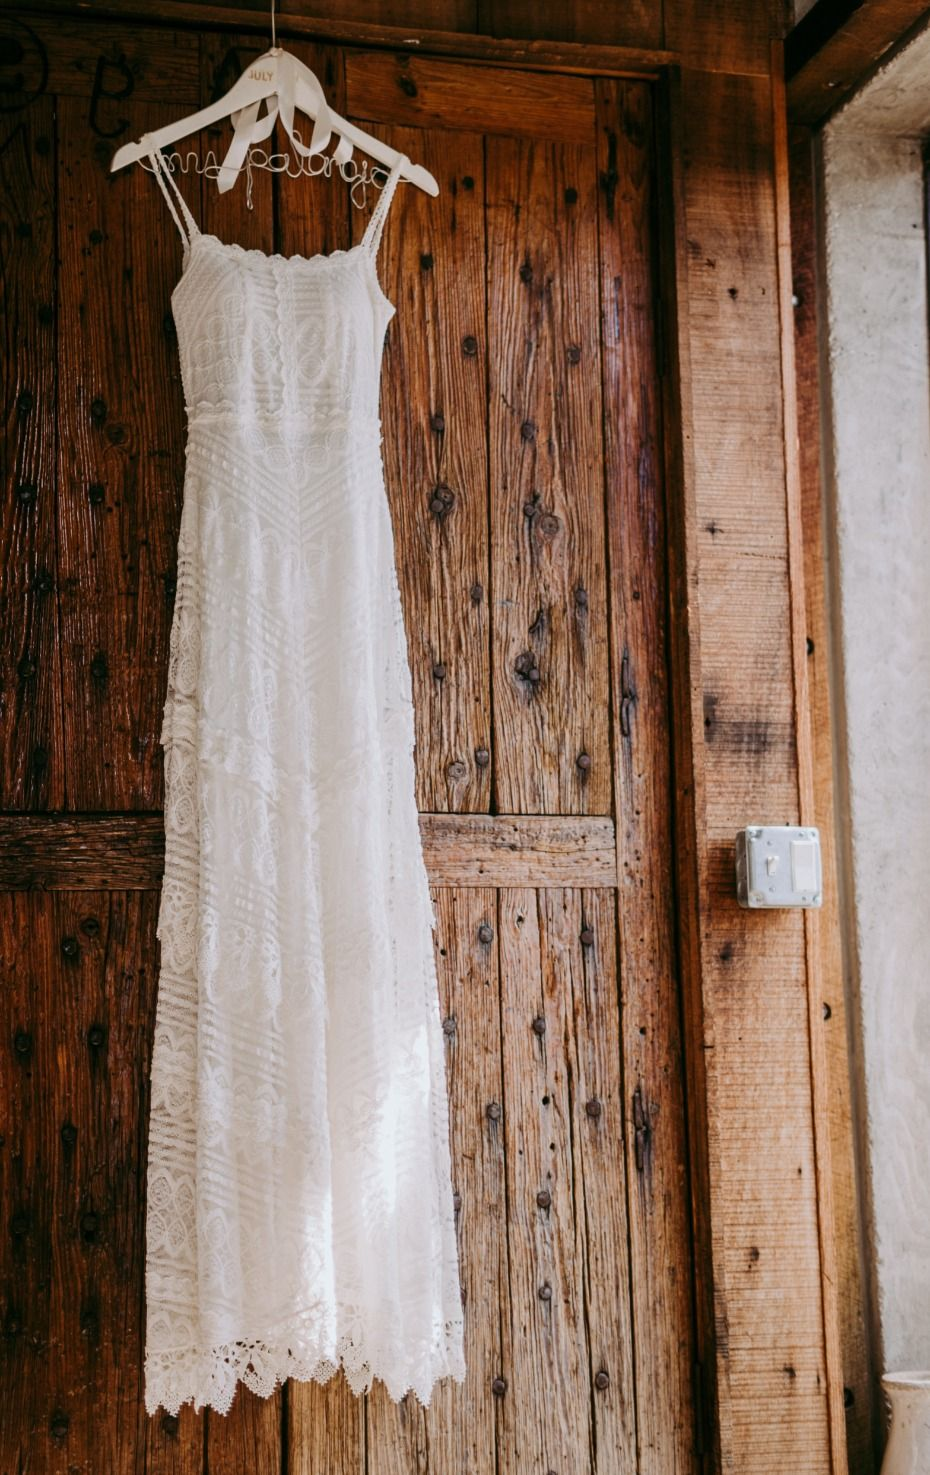 Morning wedding dresses   Things You Better Make Sure You Do On Your Wedding Morning